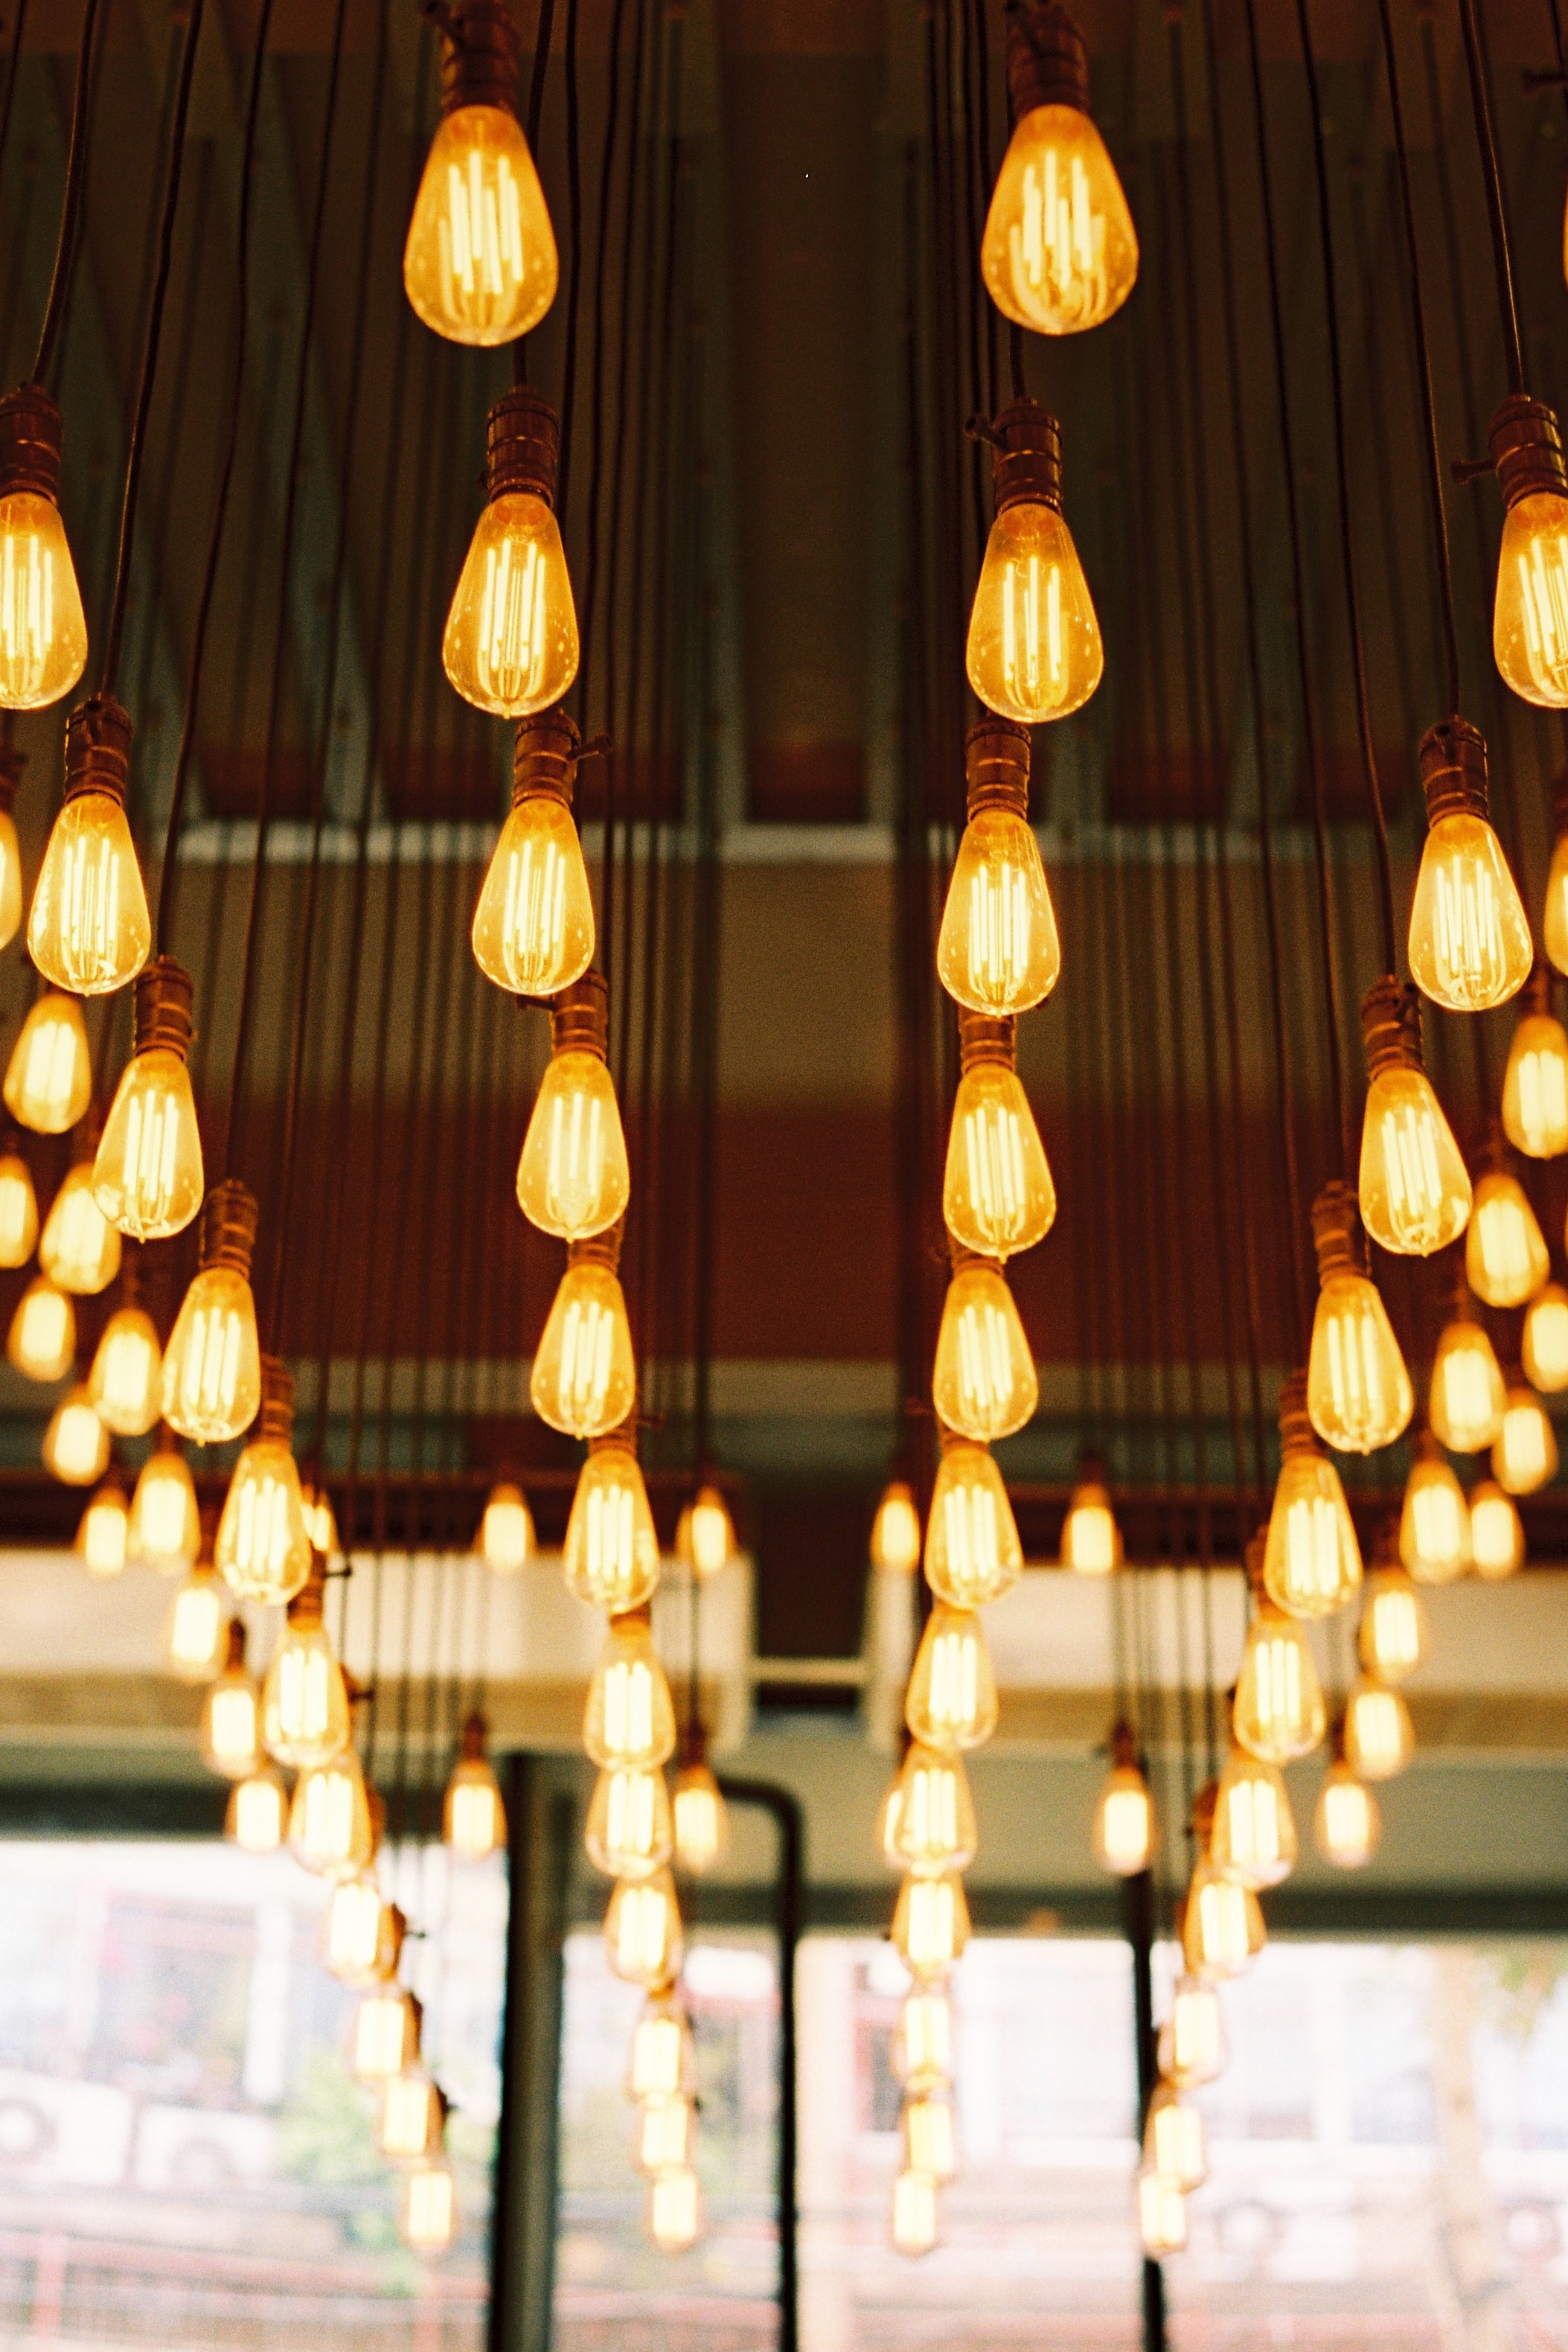 selective focus photography of light bulbs inside room